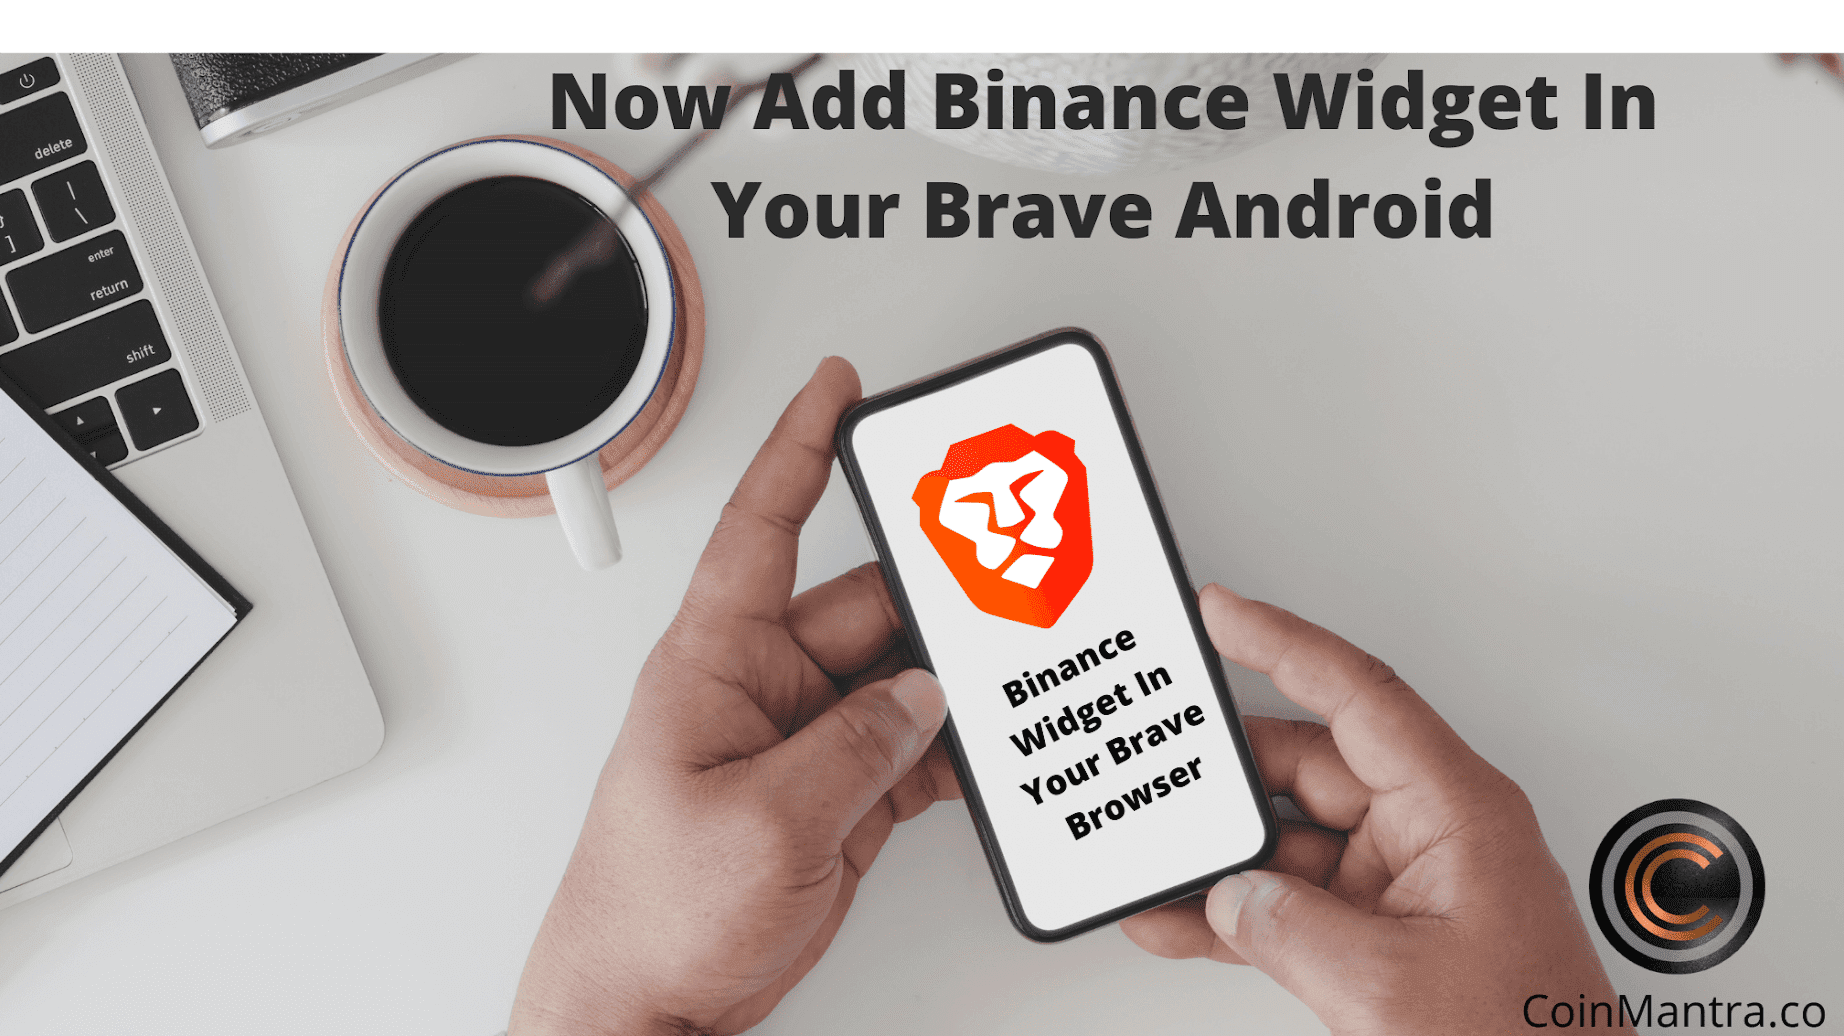 Binance Widget is now available in your Brave android